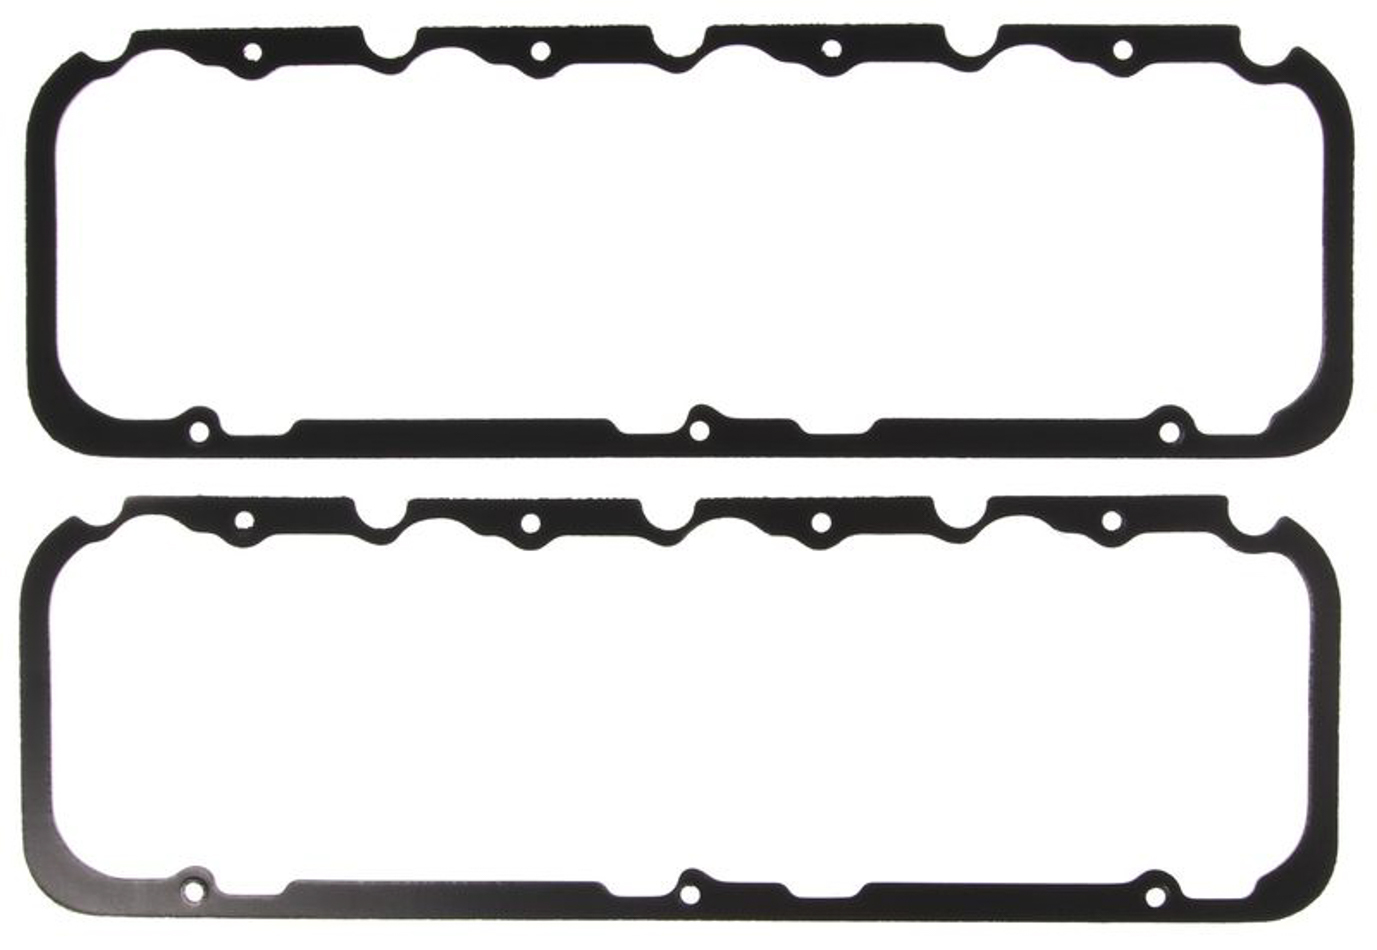 Michigan 77 VS50779 Valve Cover Gasket, 0.060 in Thick, Graphite, Big Block Chevy, Pair